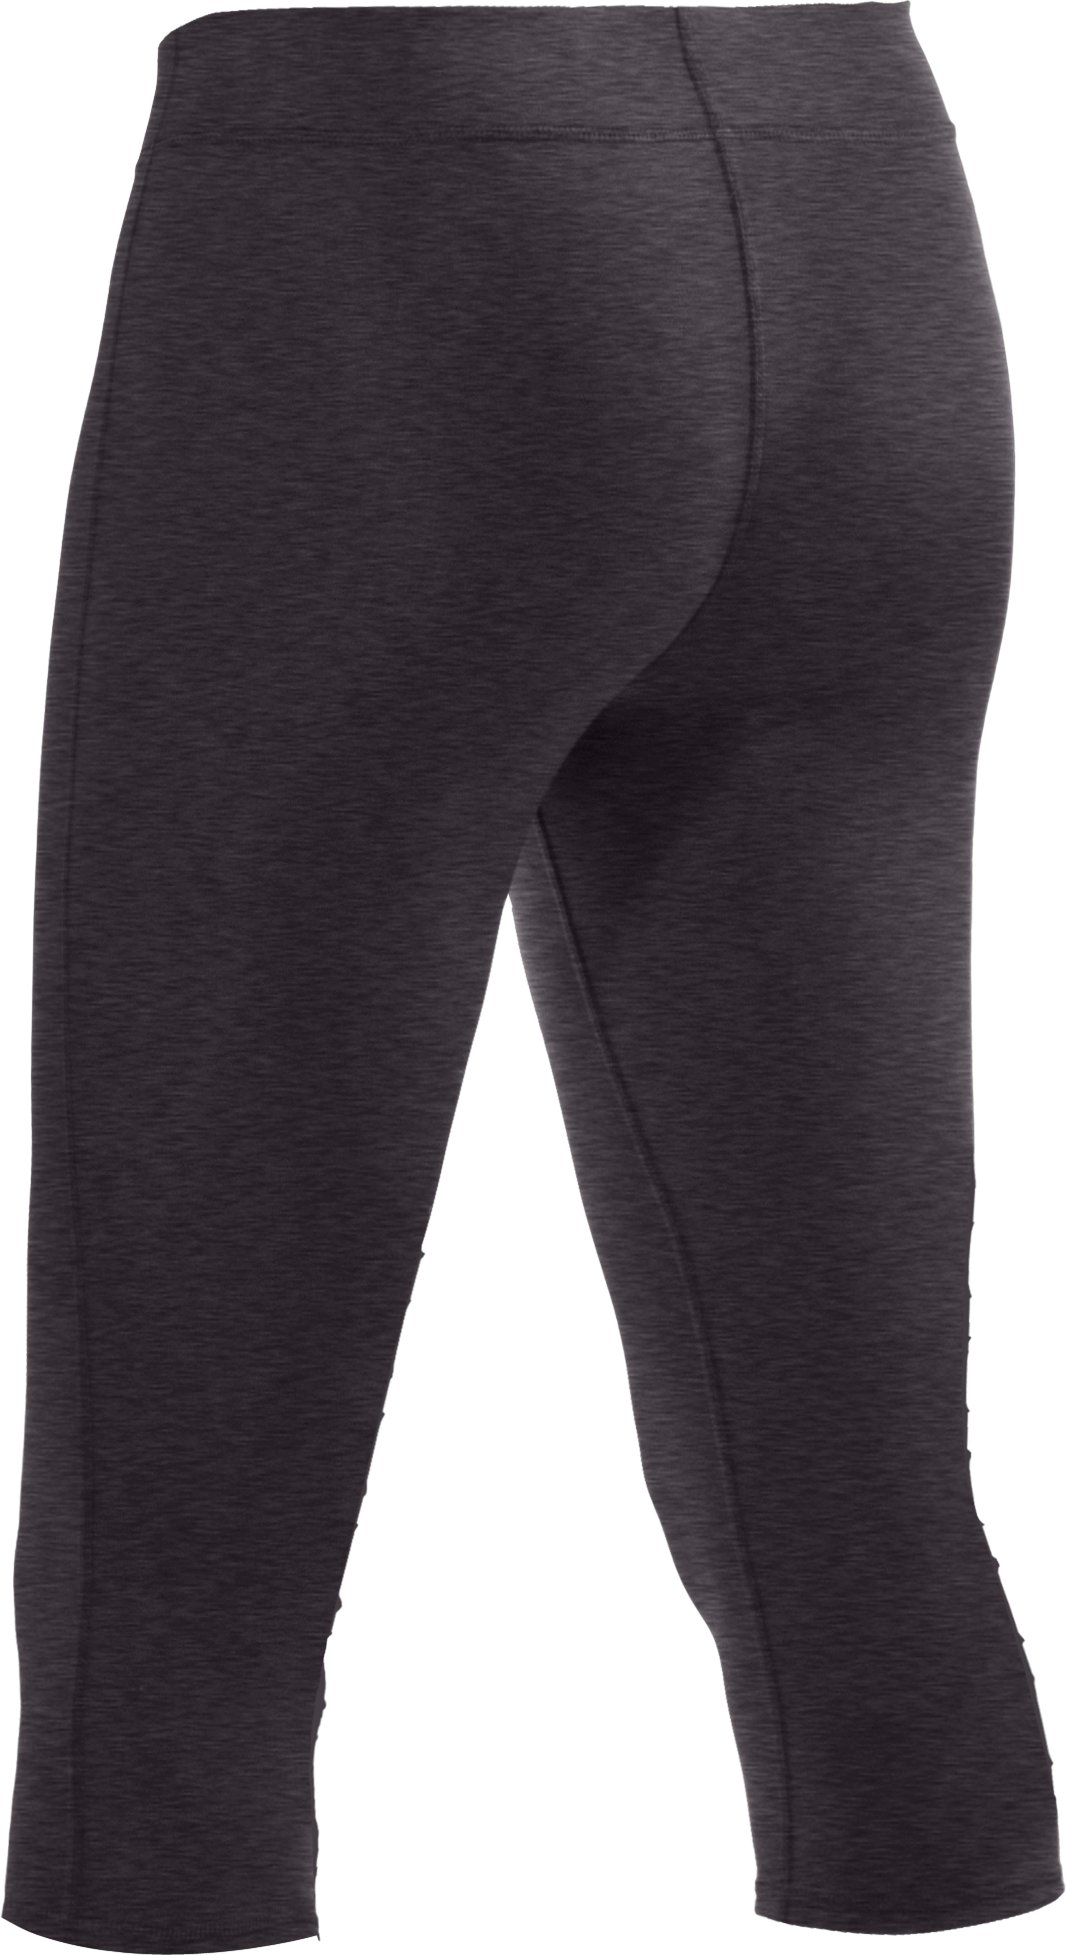 "Women's HeatGear® Squat 15"" Capri, Black , undefined"